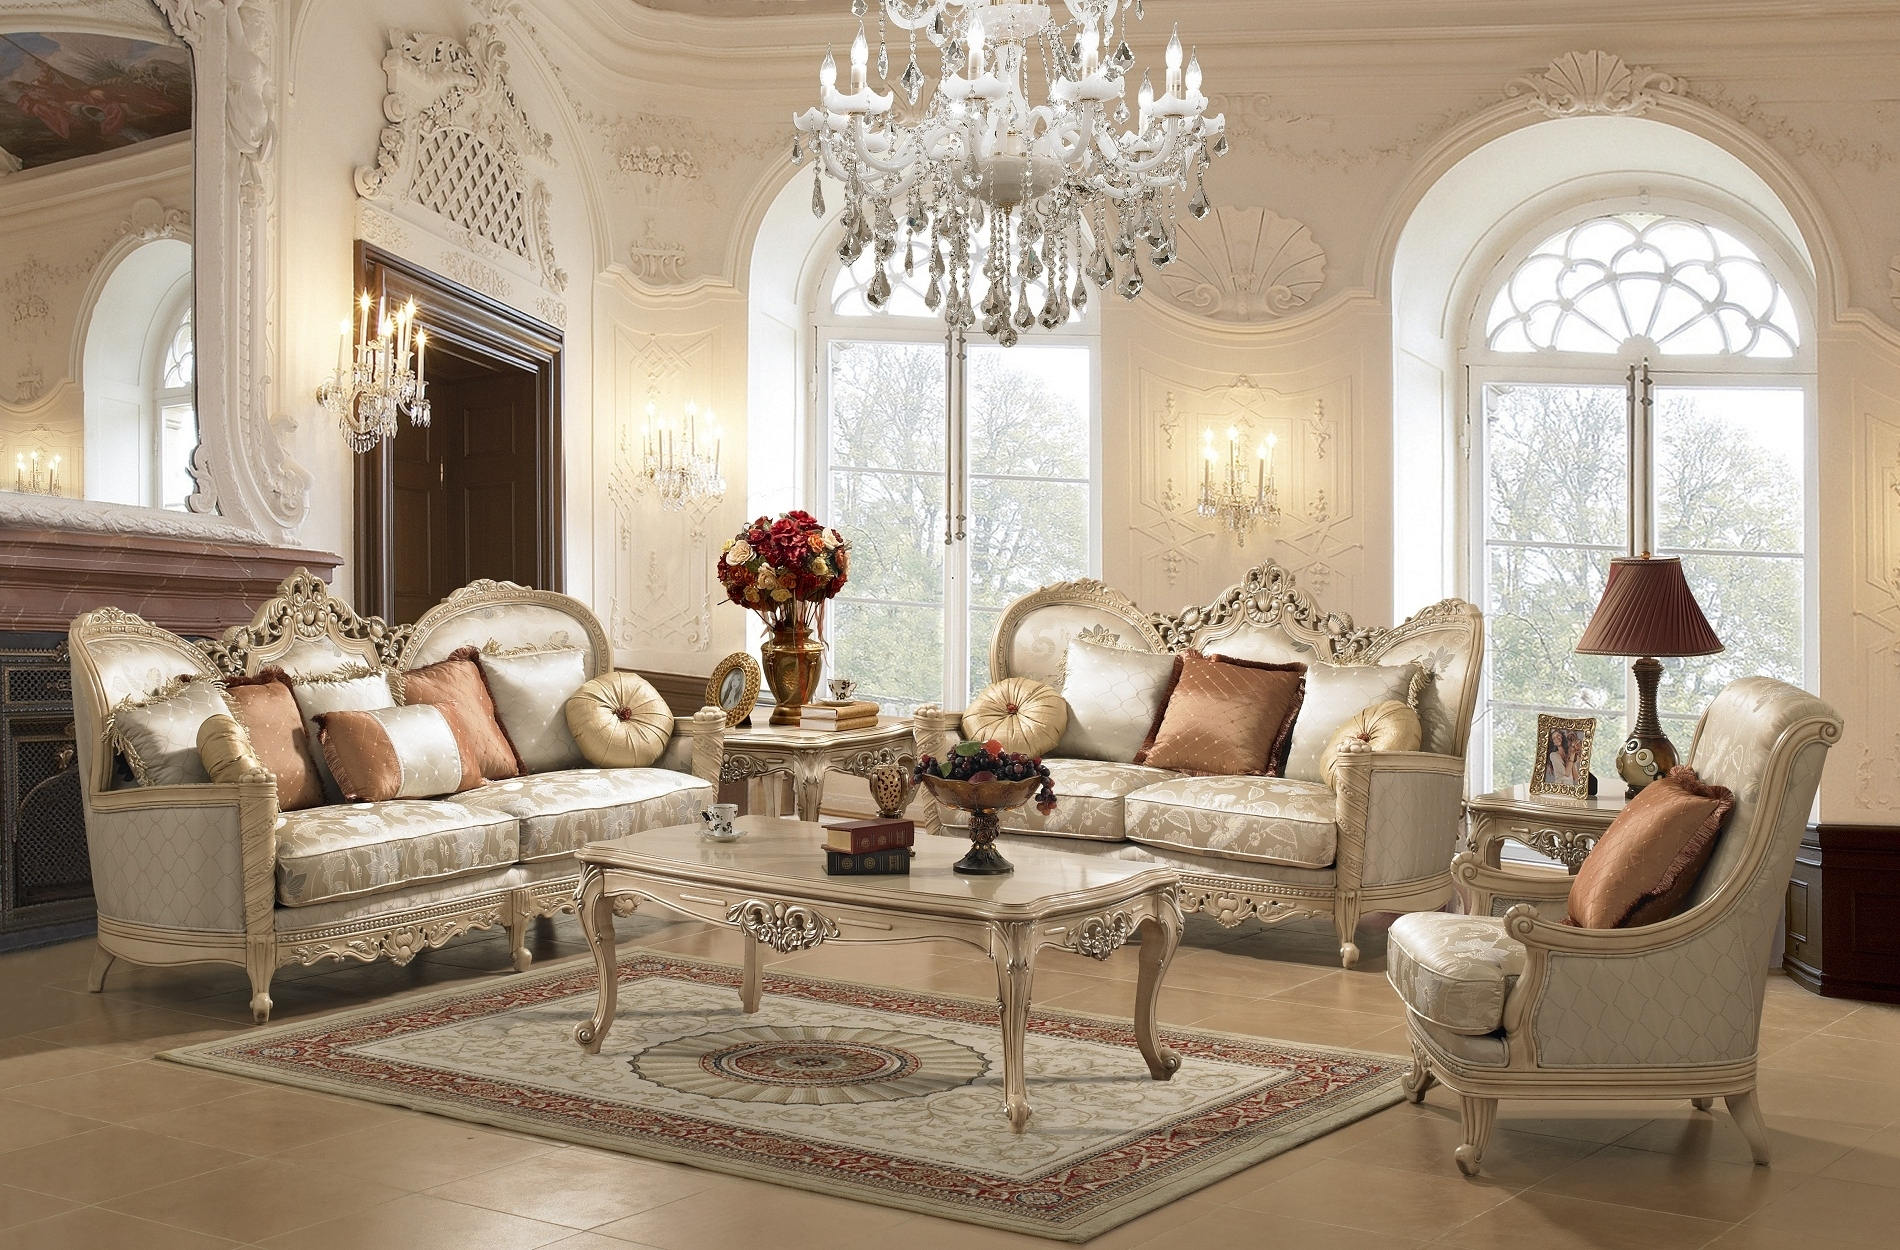 Uncategorized : Elegant Sofas Within Awesome 15 Best Collection Of Within Current Elegant Sofas And Chairs (Gallery 12 of 20)